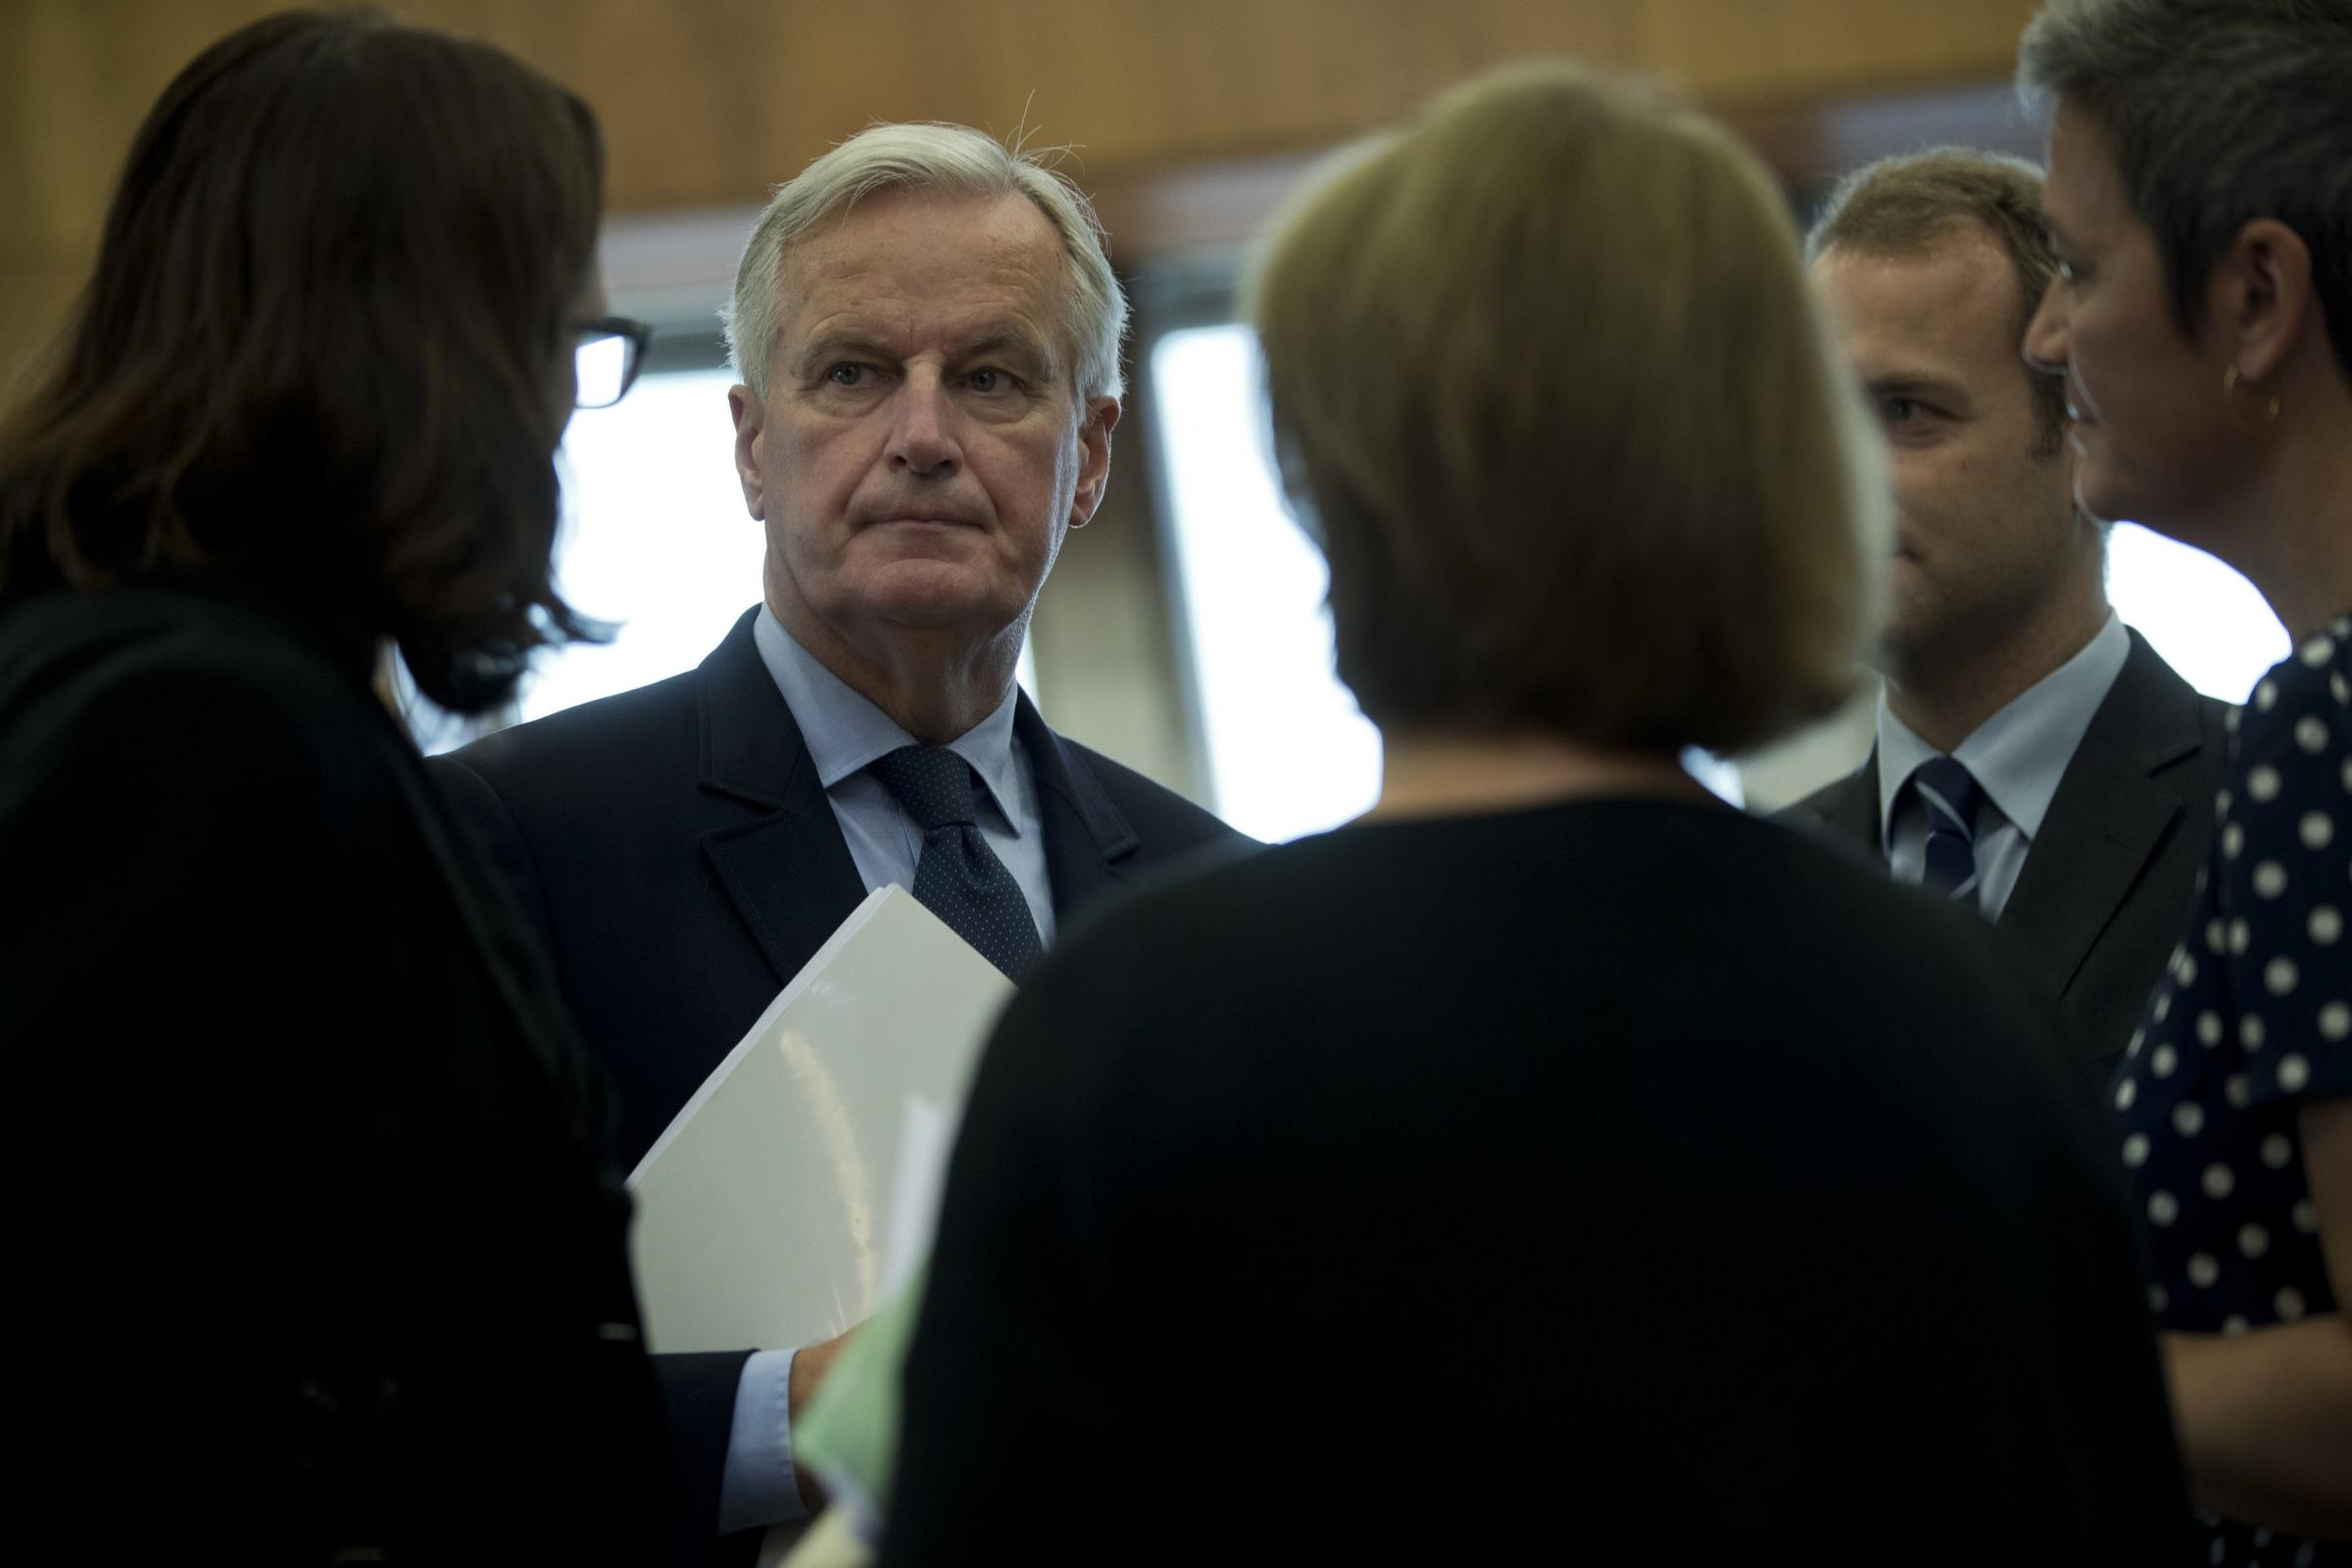 Michel Barnier made clear no agreement has been reached over protected produce